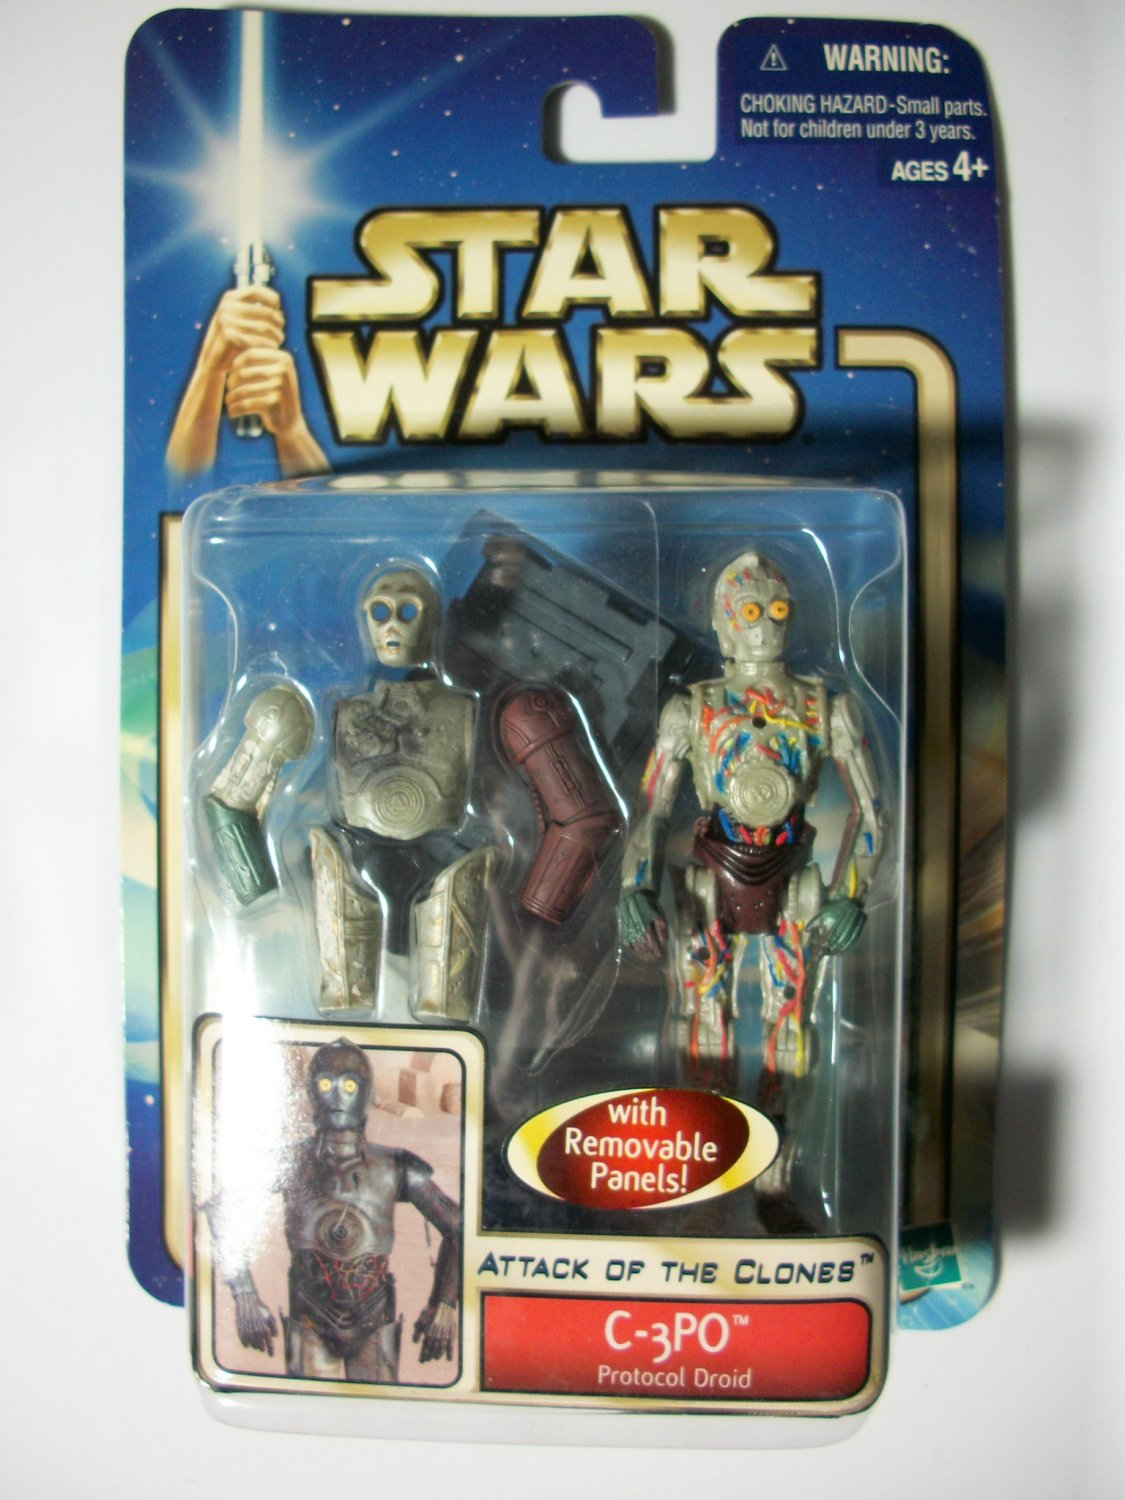 STAR WARS AOTC C-3PO  Action Figure